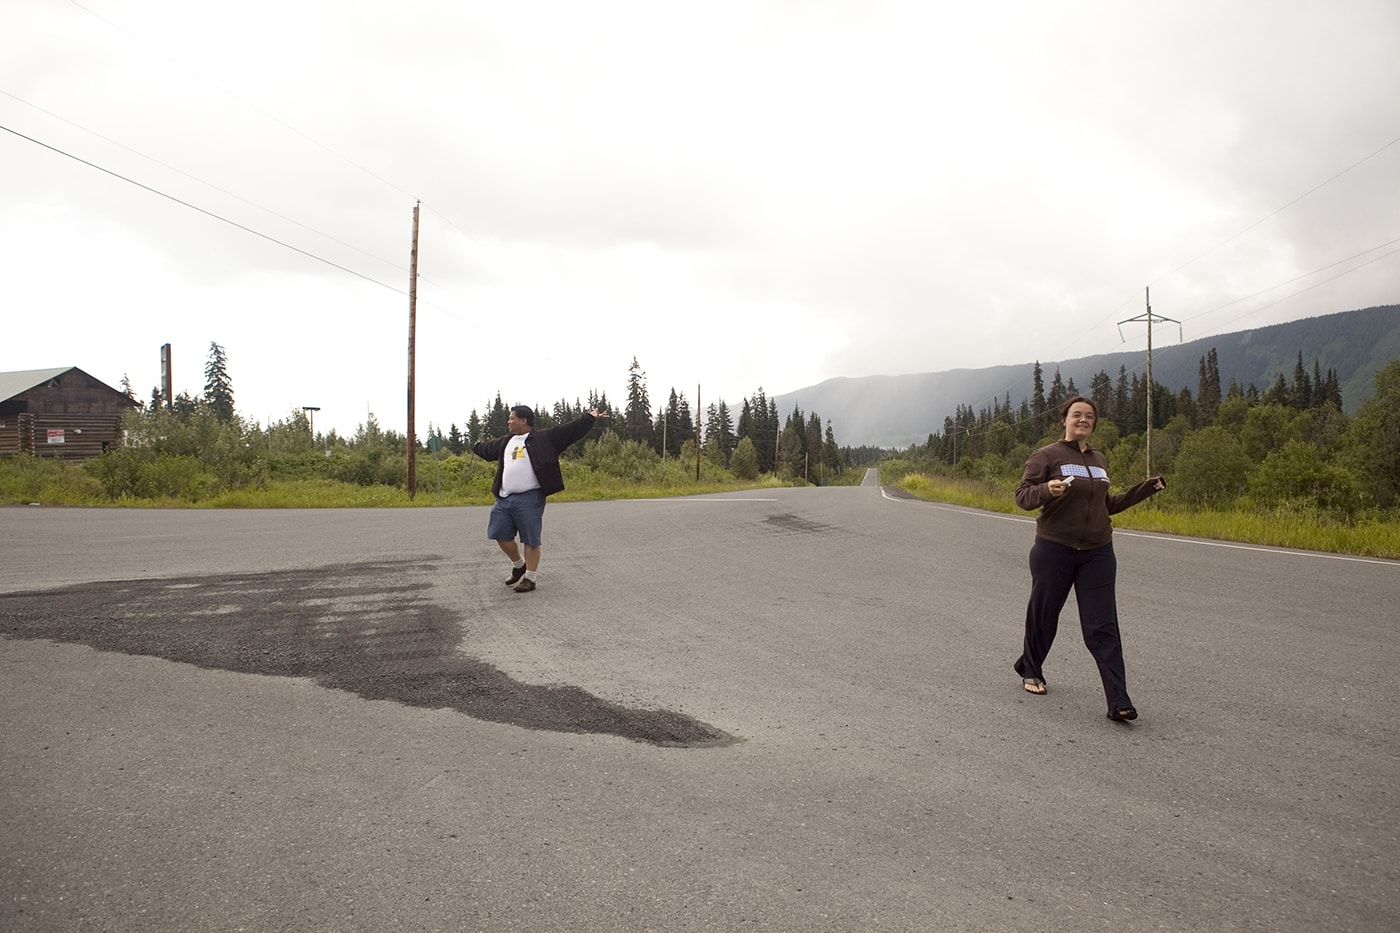 Playing in the middle of the highway at the Meziadin Junction, a Hyder, Alaska Visitor Information Center, in British Columbia, Canada.